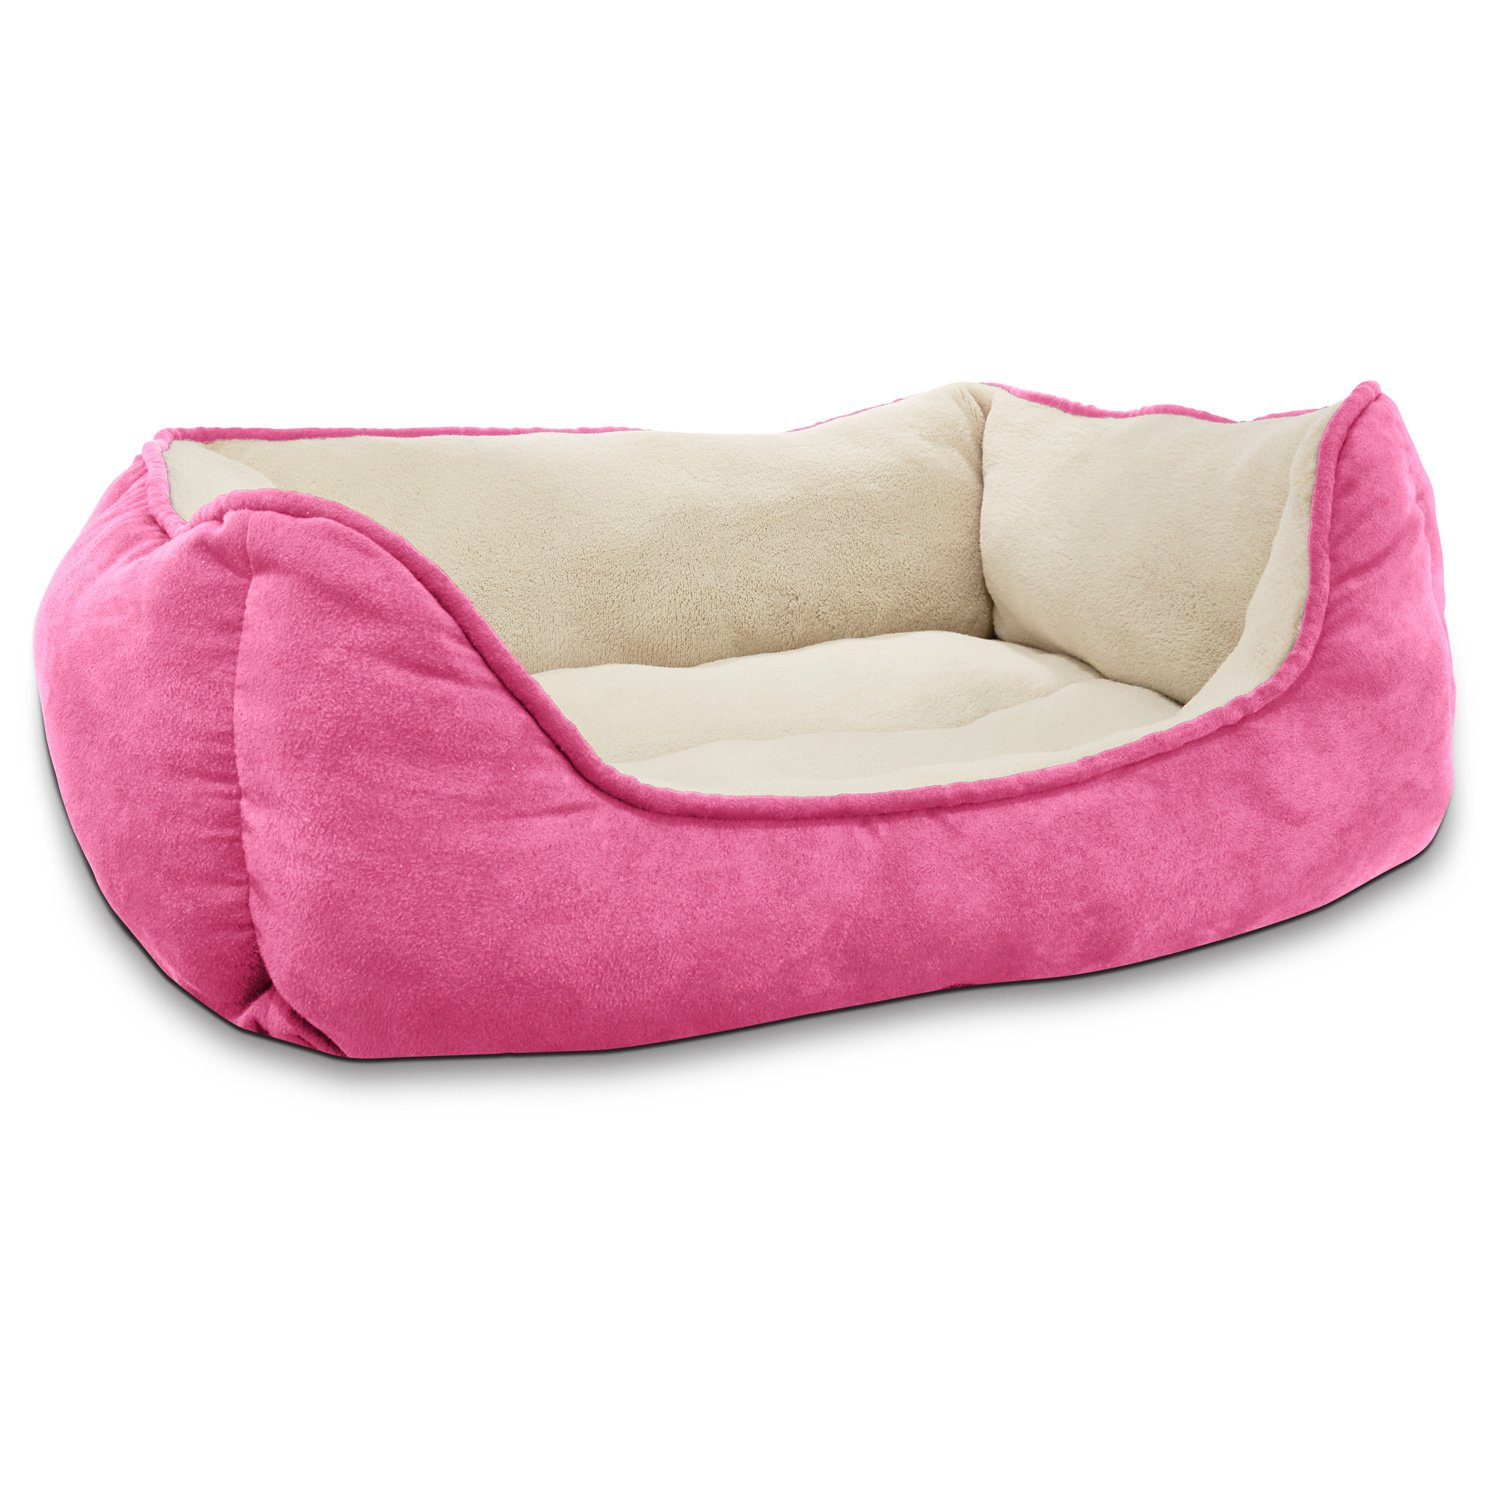 Petco Box Dog Bed in Pink